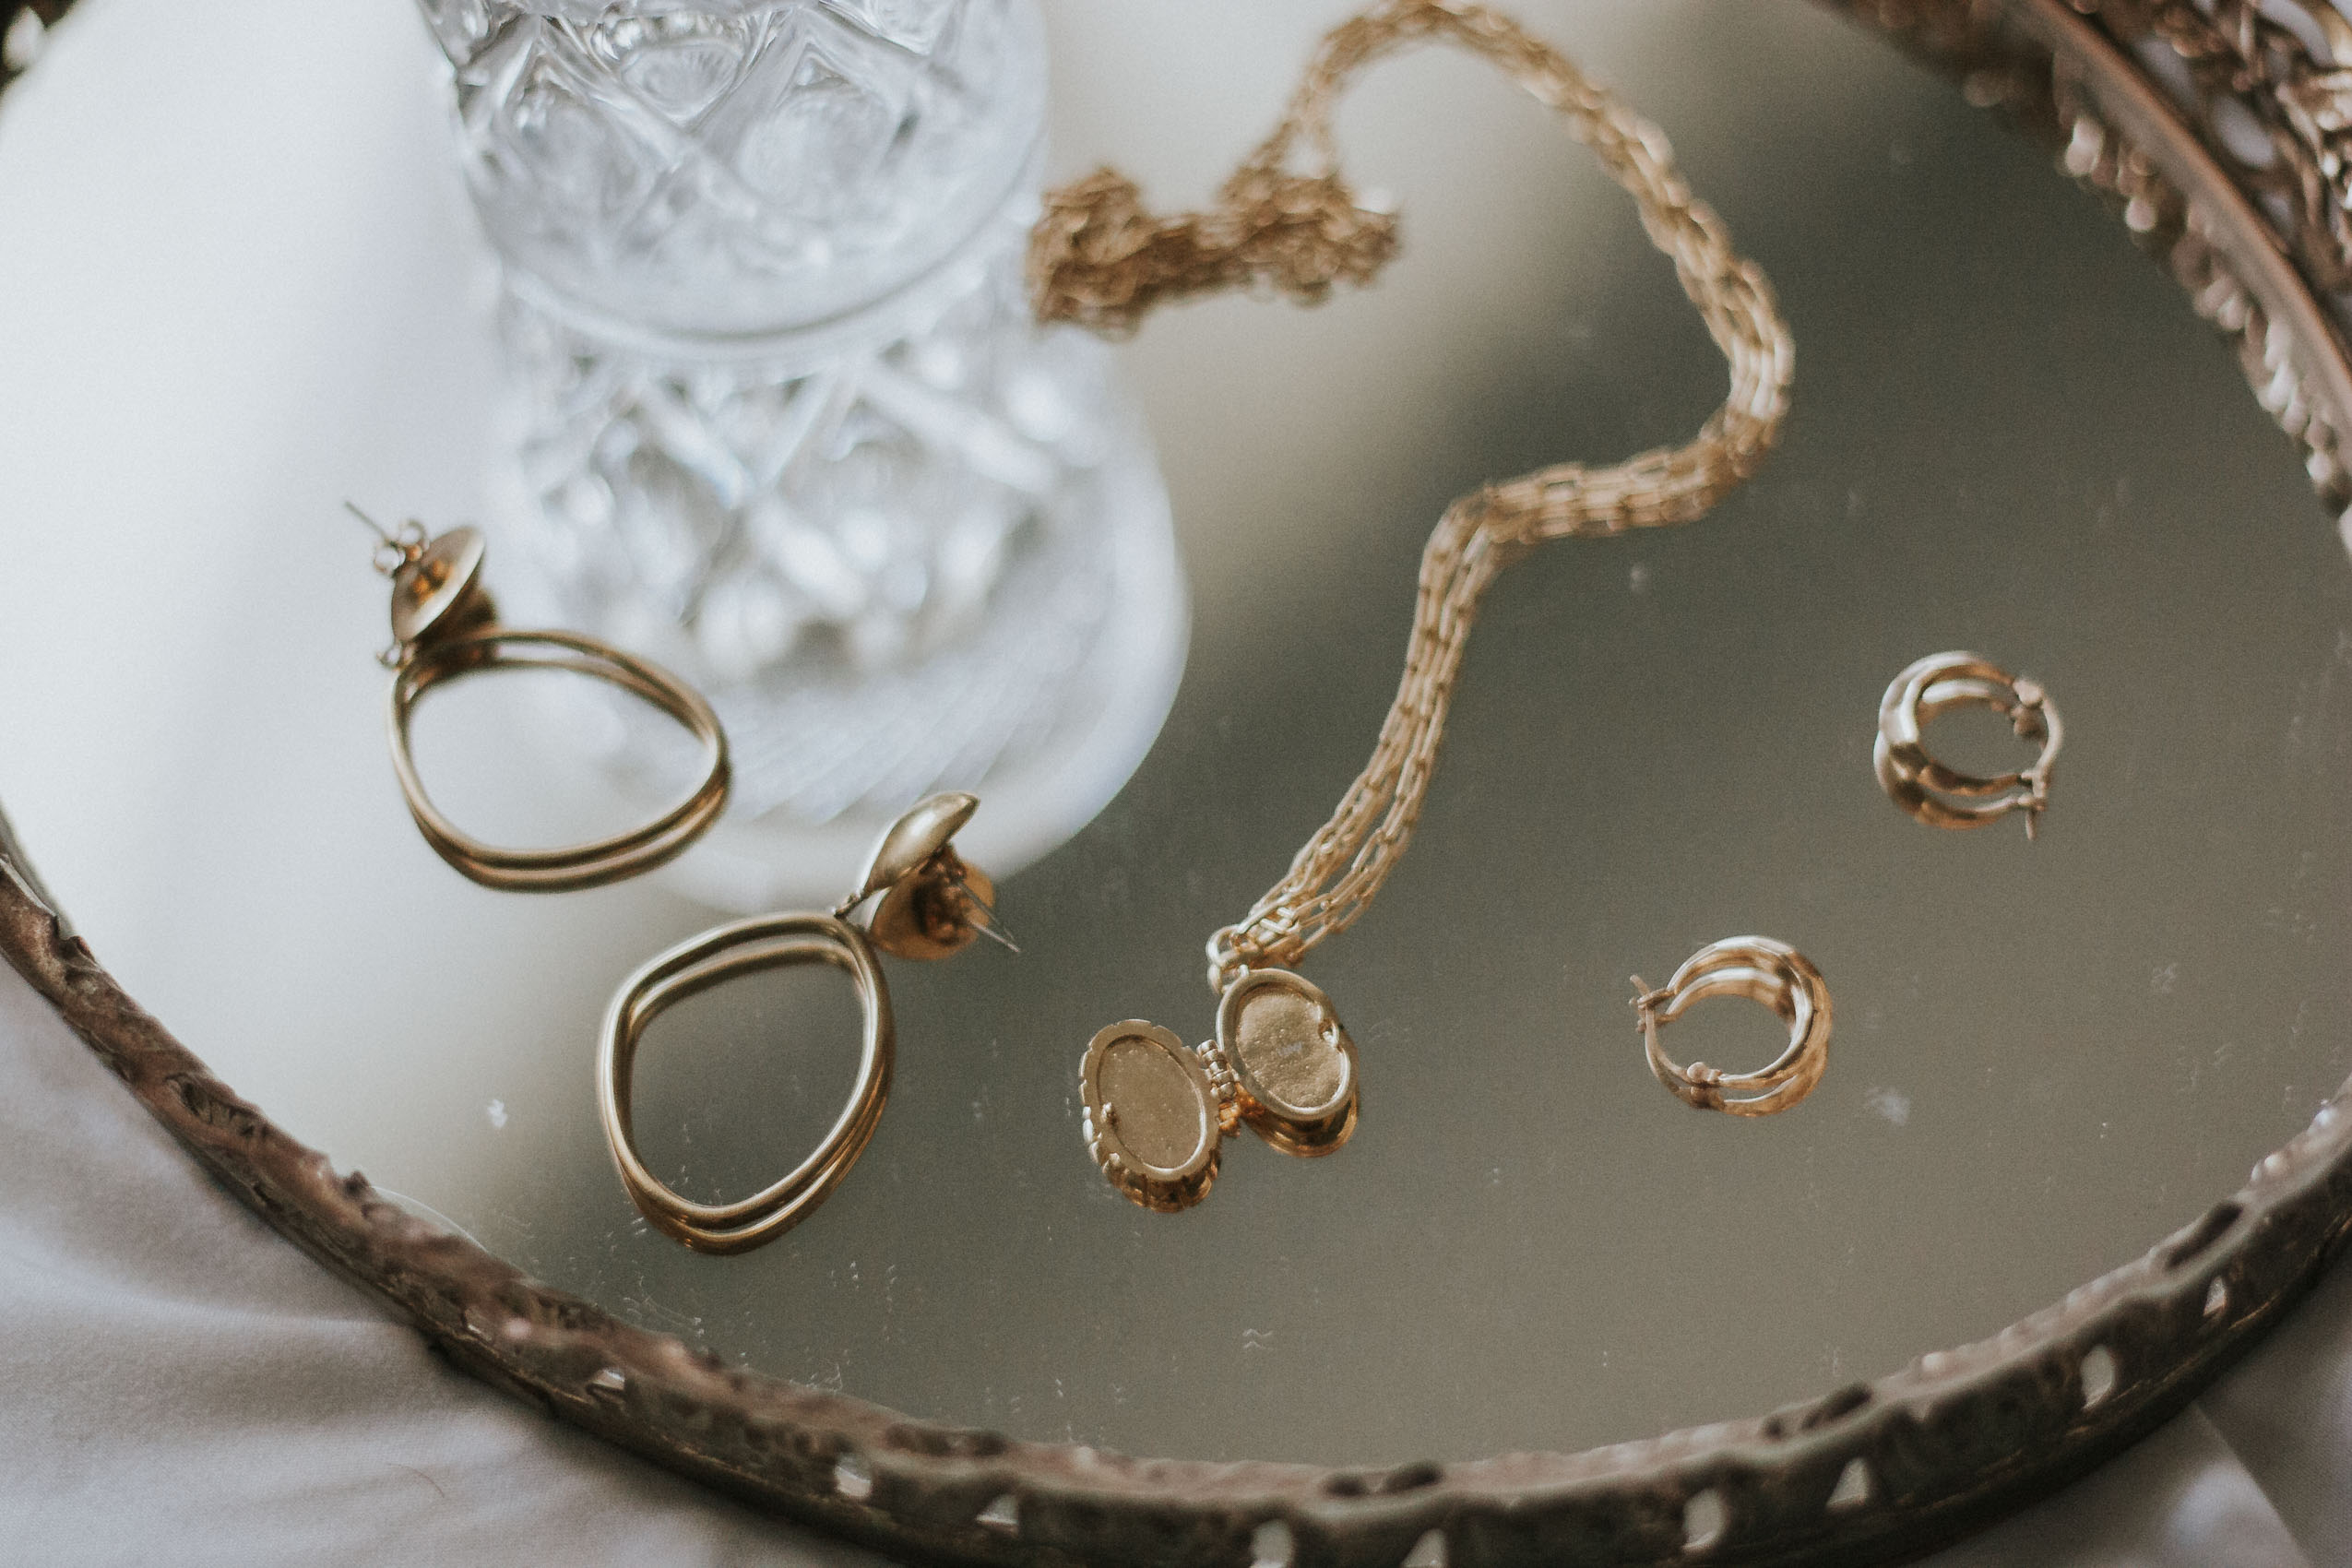 1487c39f917 My Minimalist Jewelry Picks + Link Up - Jeans and a Teacup